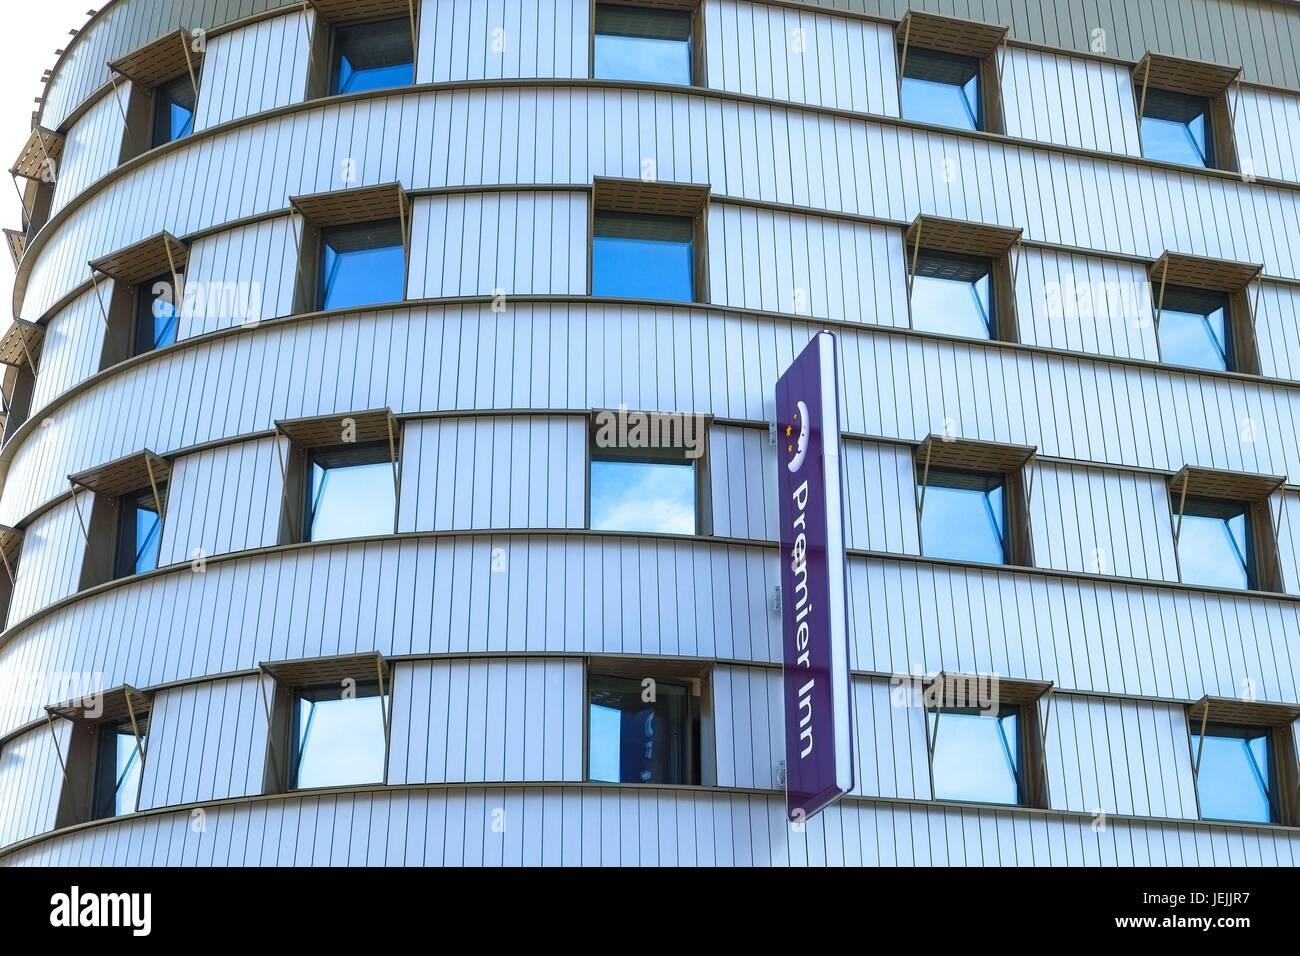 London, UK. 26th June 2017. Hotel chain Premier Inn admits concern over cladding used on it's buildings and is reviewing Stock Photo